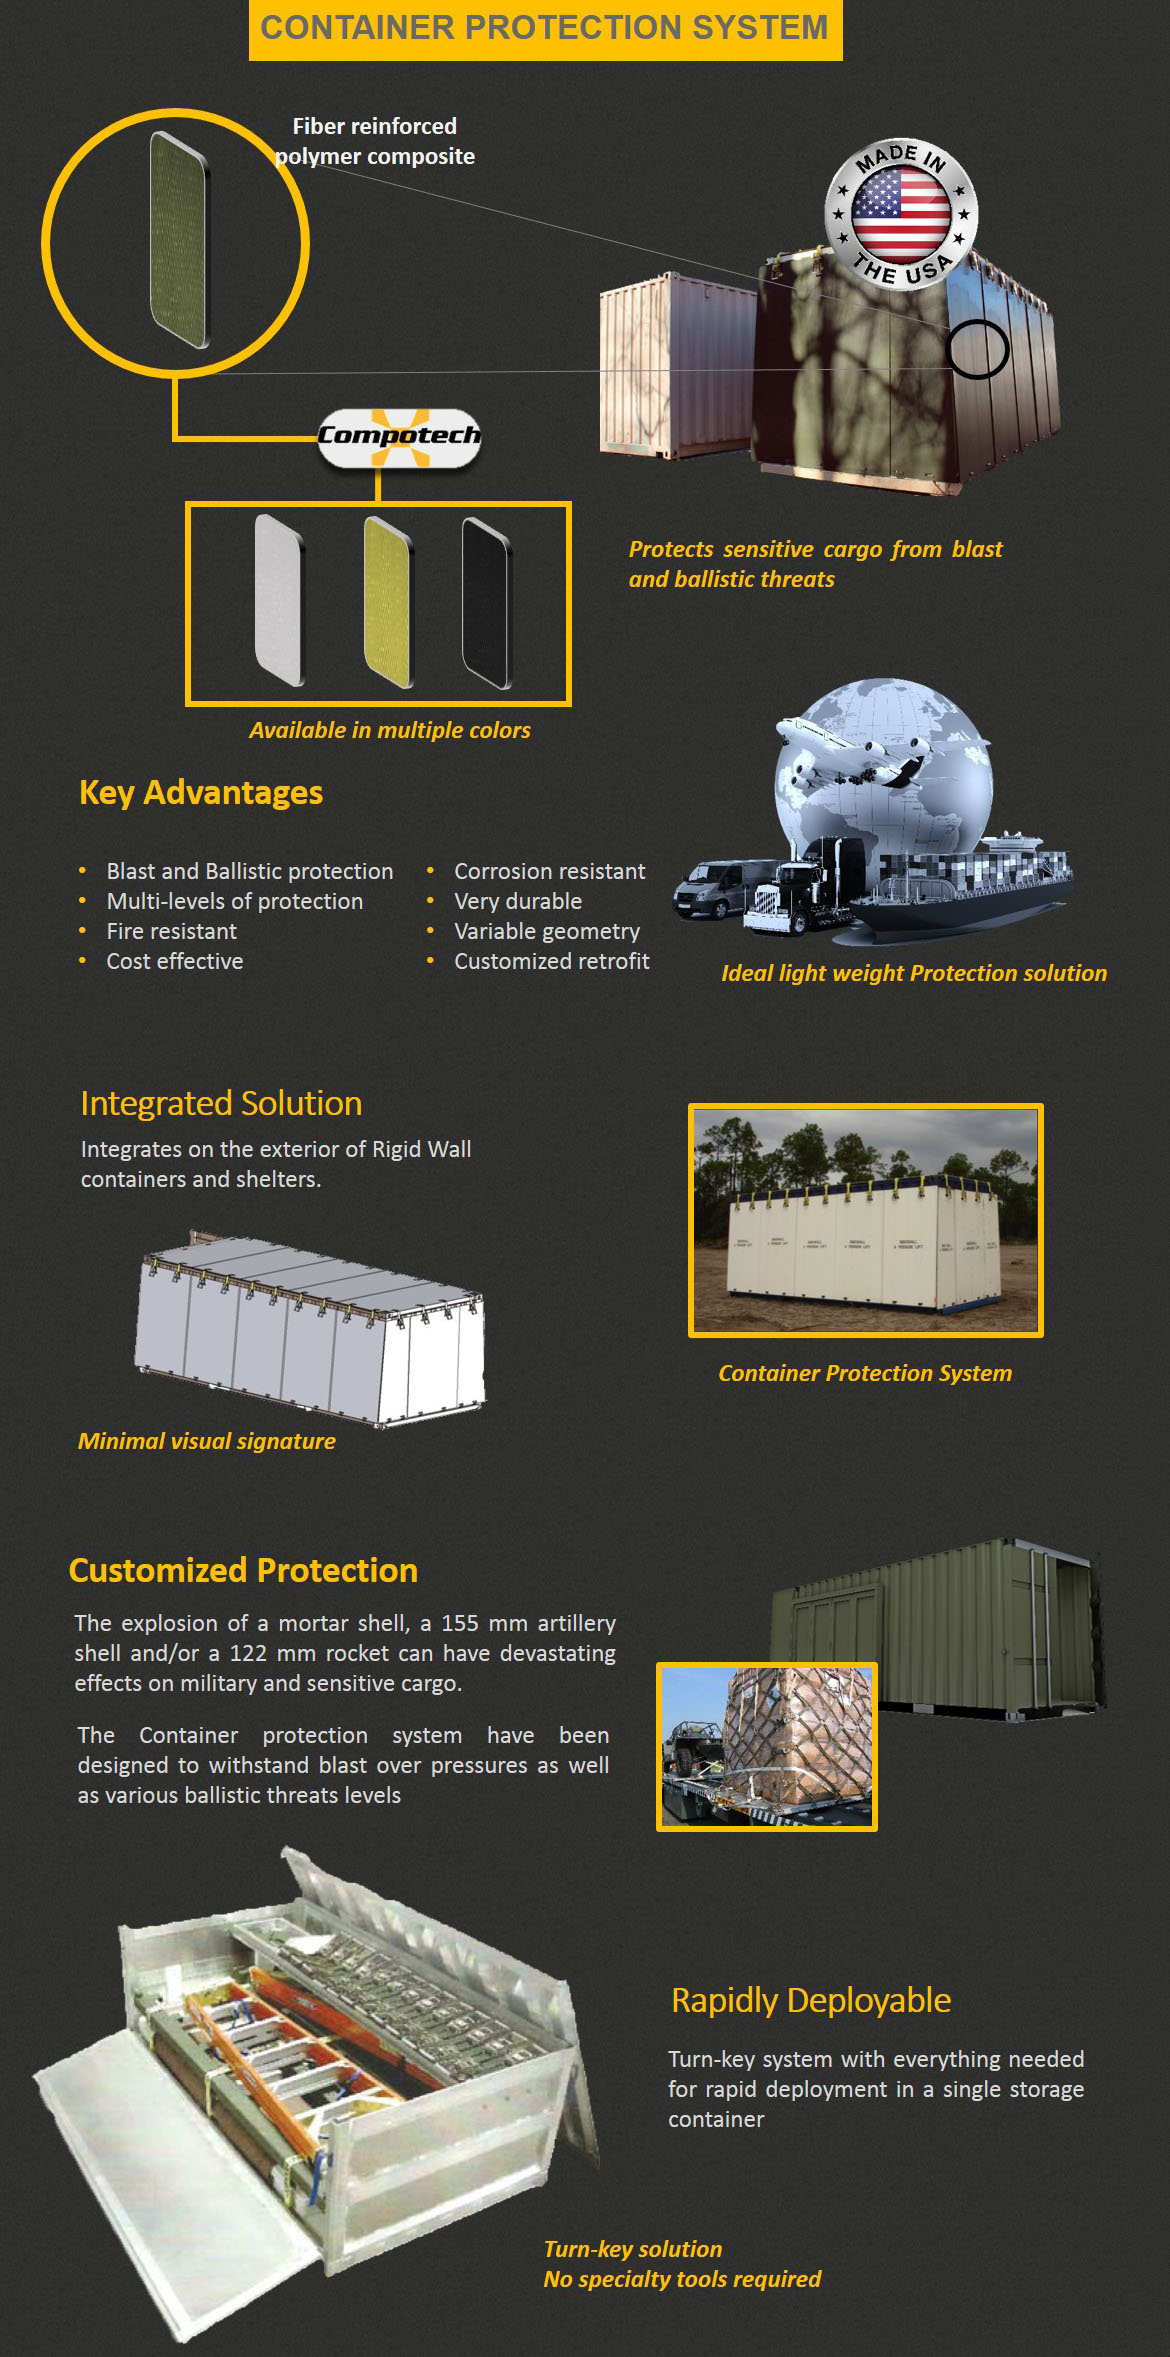 Container protection System website image